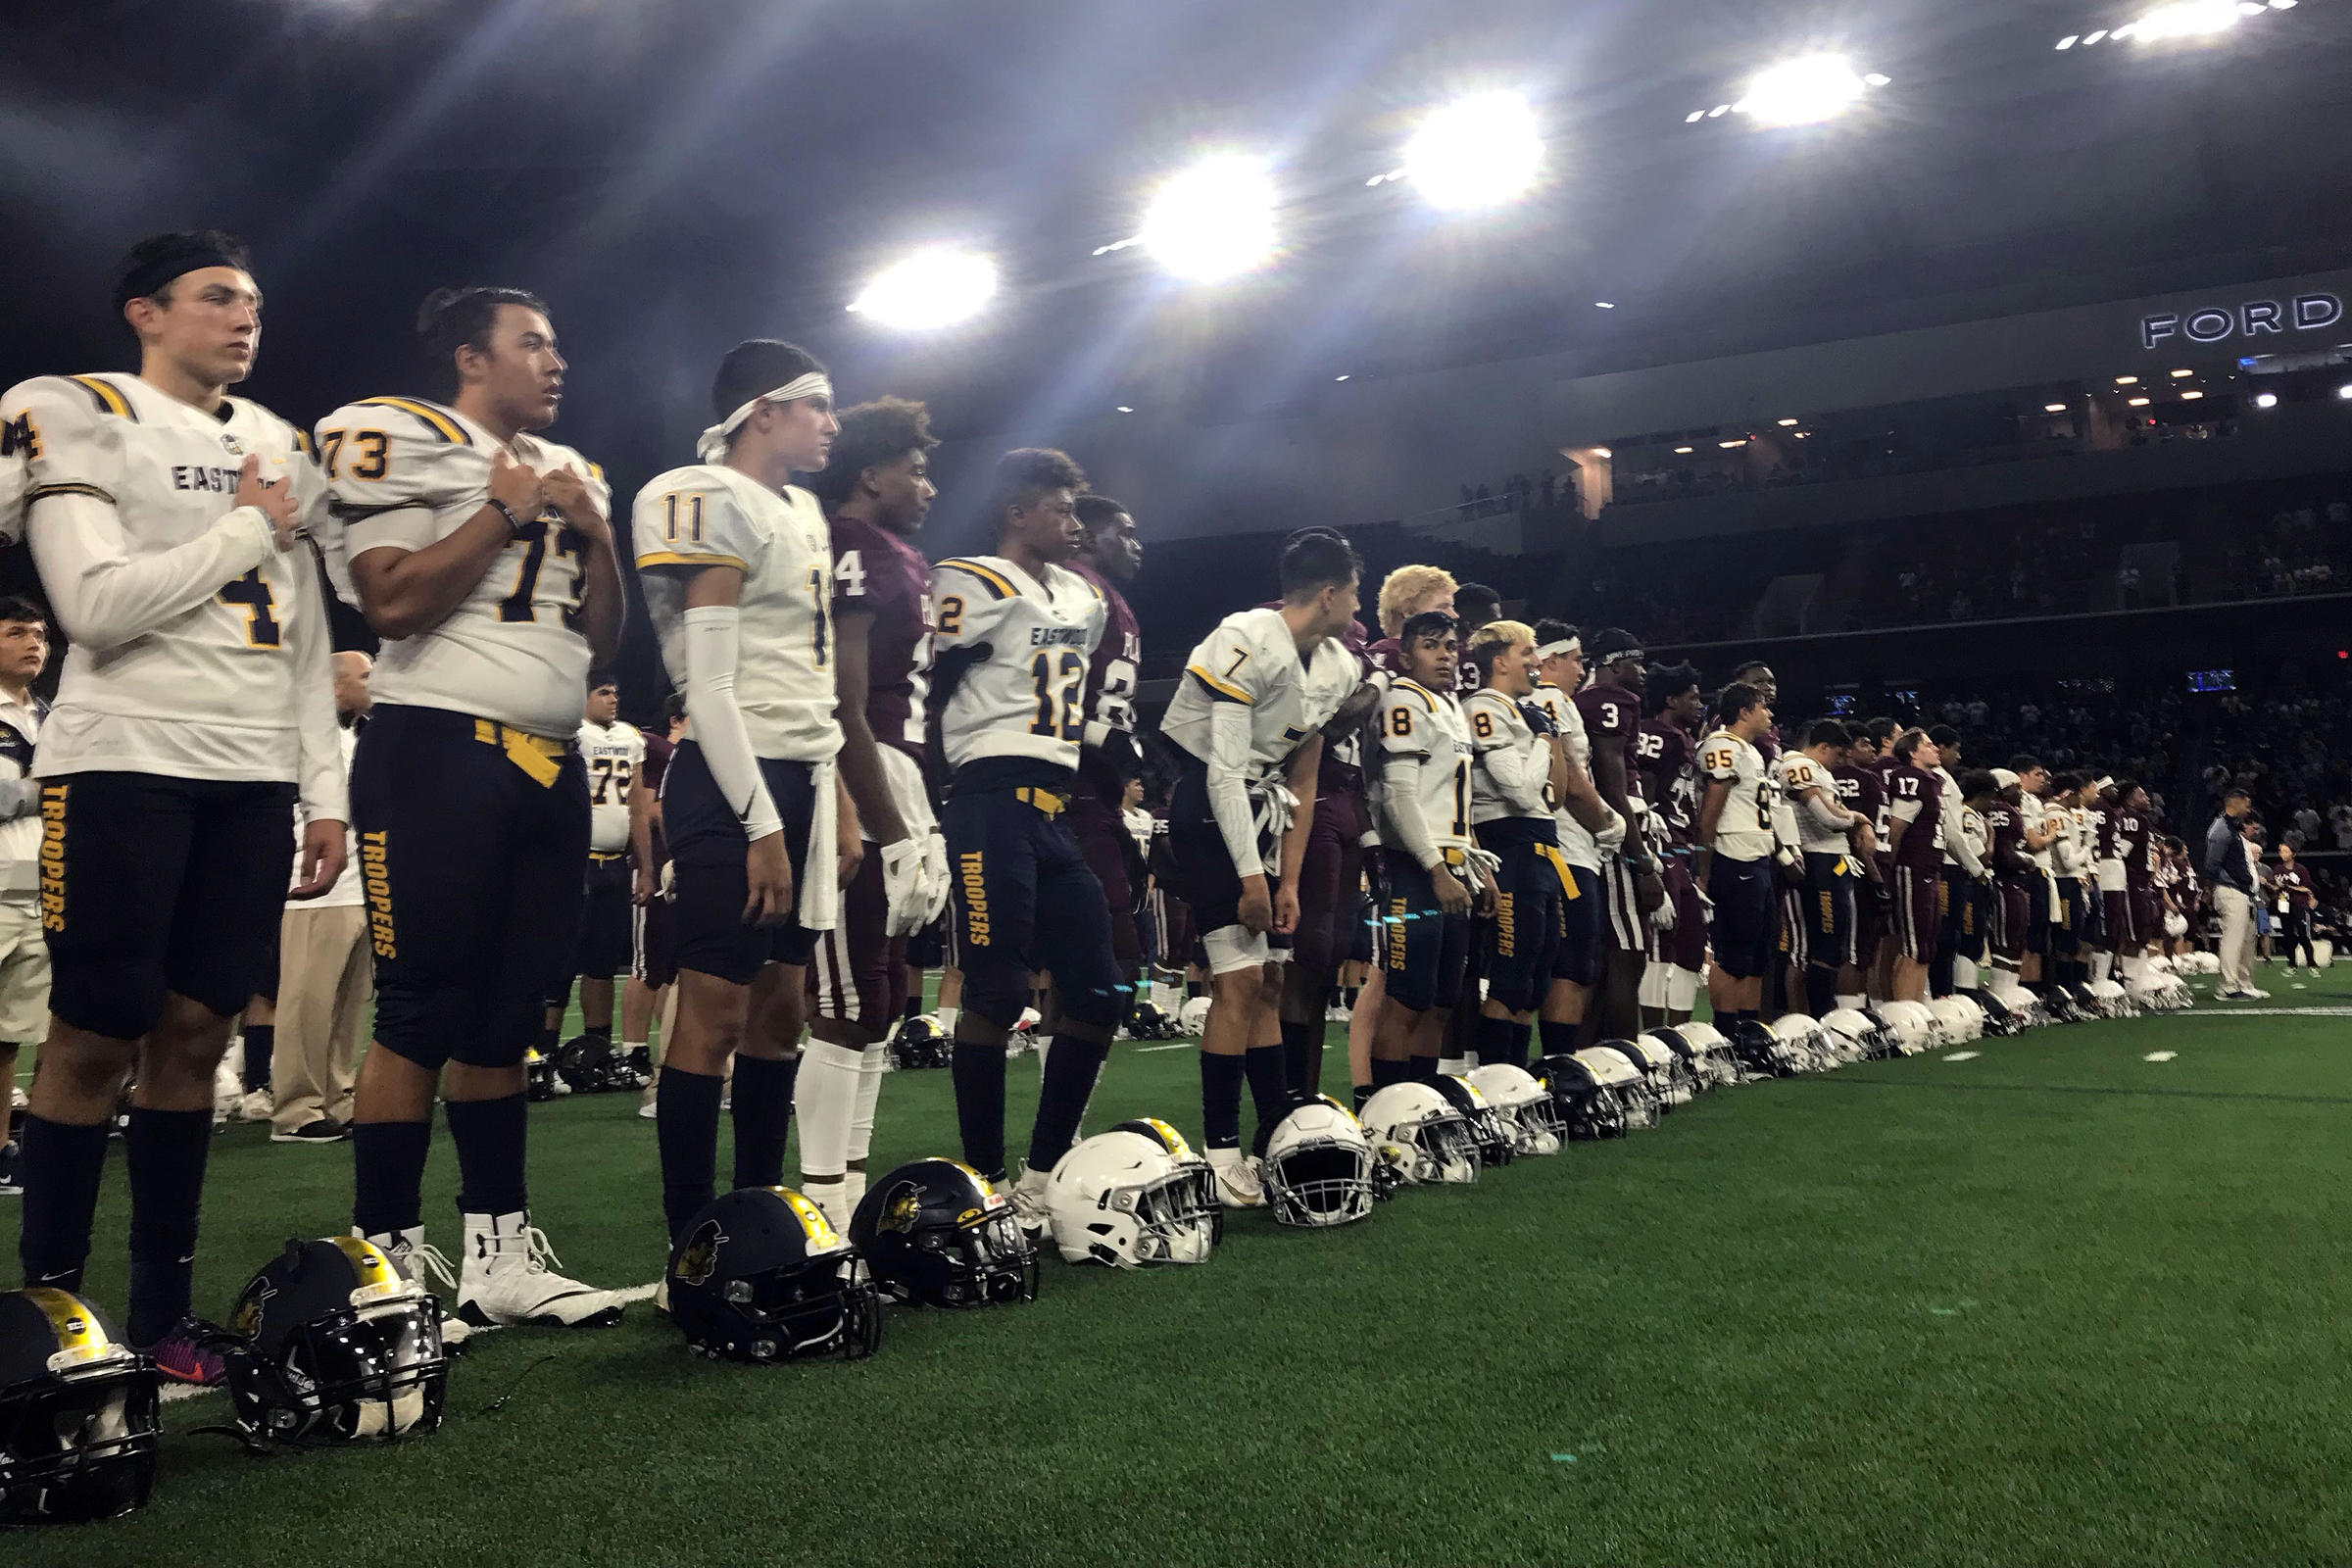 El Paso-Plano Football Game Highlights Unity Over Fear | KUT